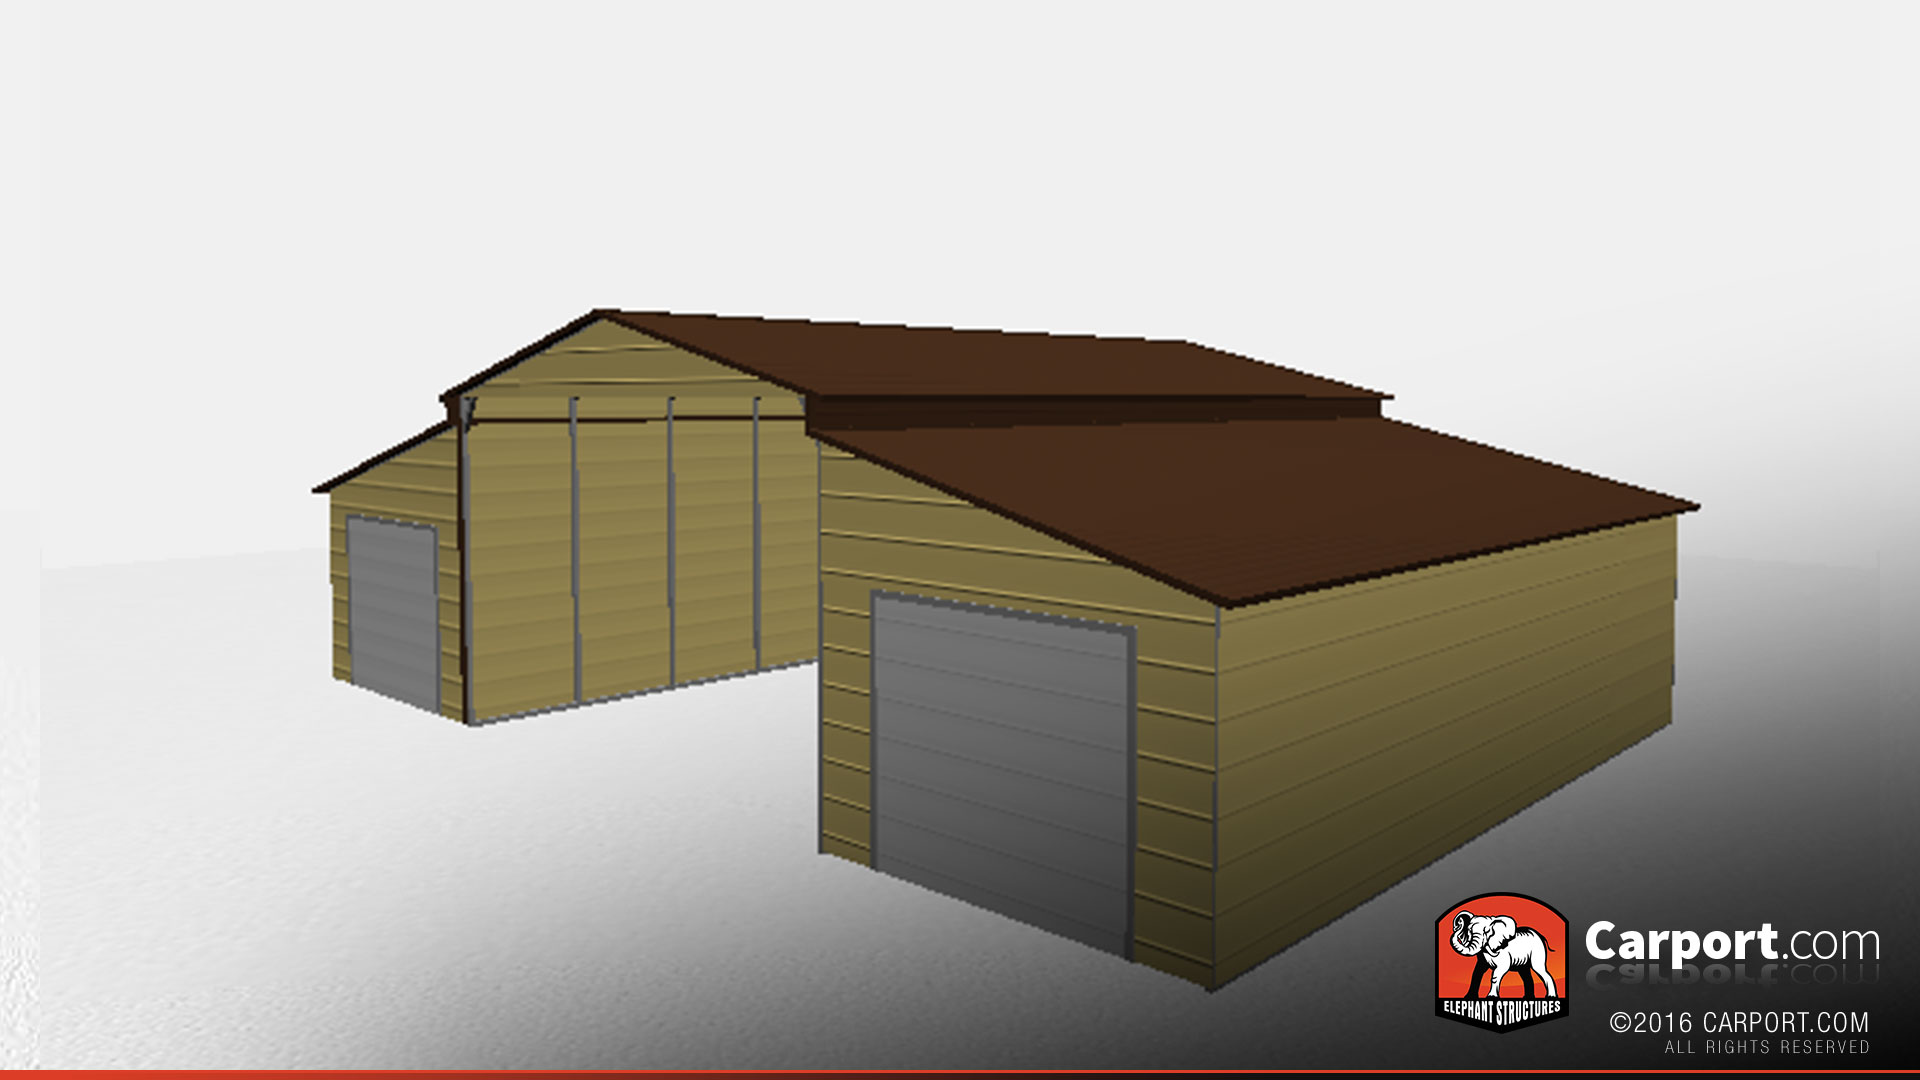 30 u0027 x 40 u0027 x 12 u0027 ridgeline barn with two garage doors ridgeline barns